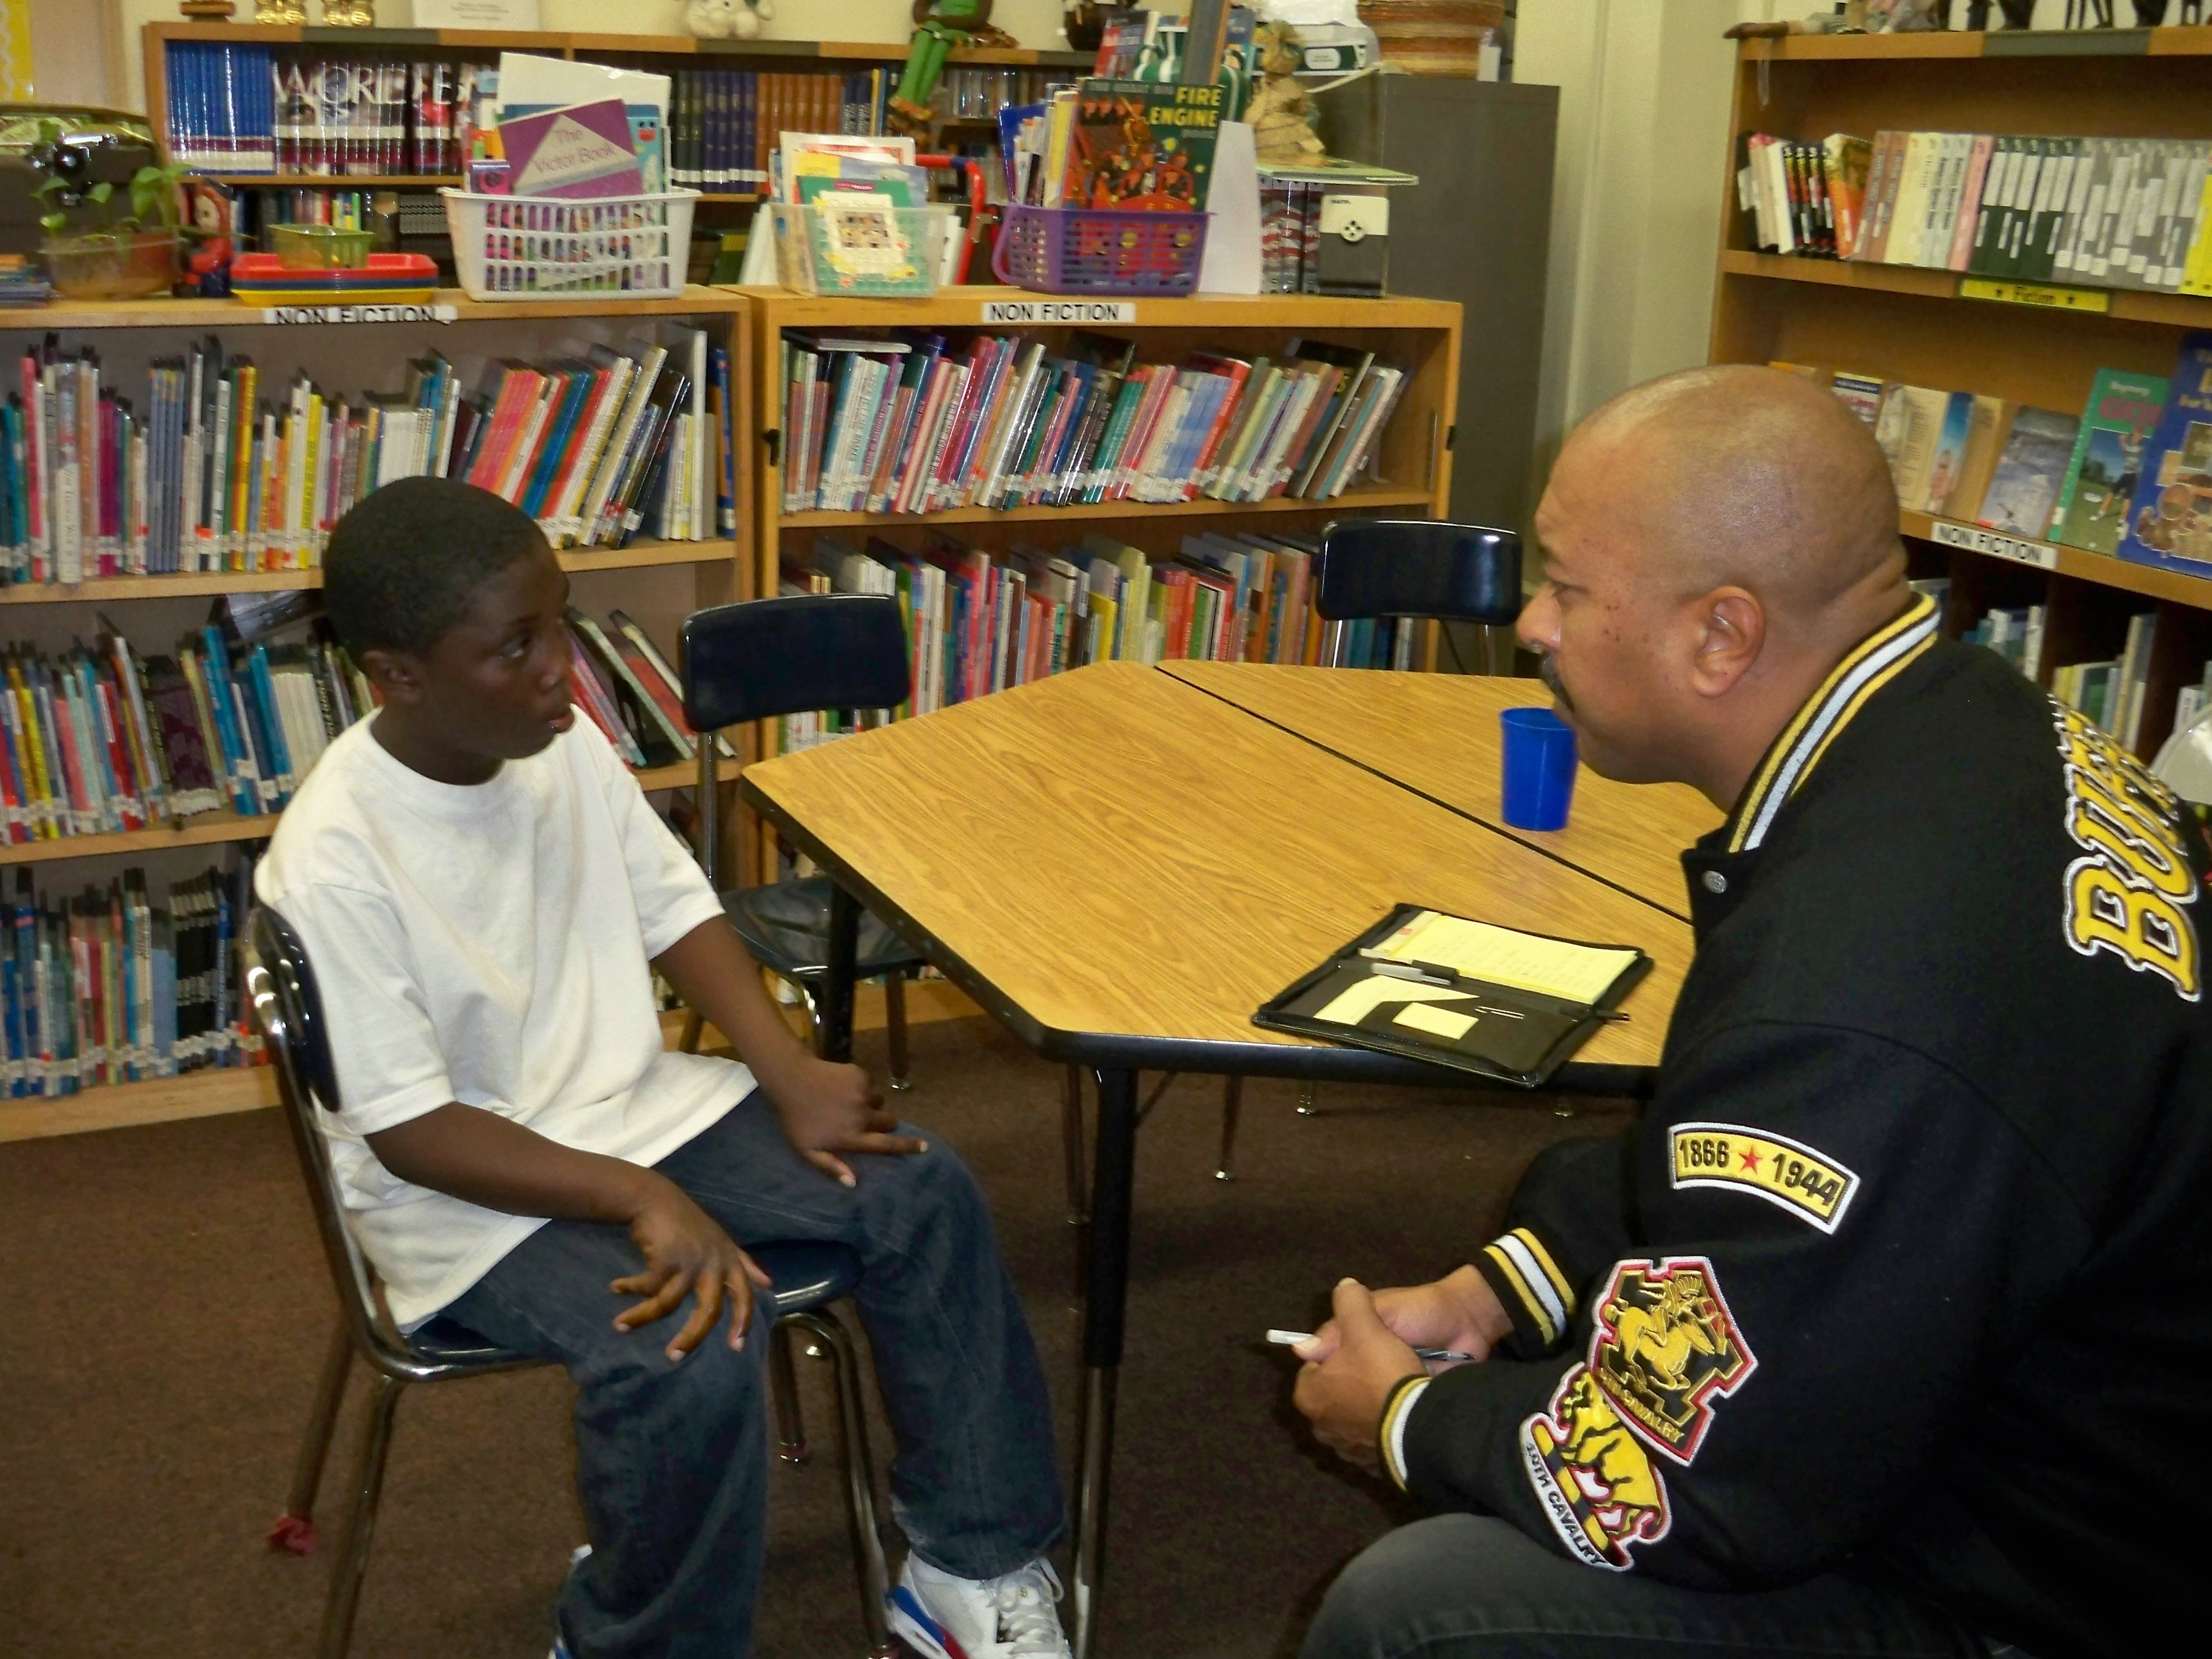 Brent F. Burton mentoring a young man at Barret Elementary School in South L.A.